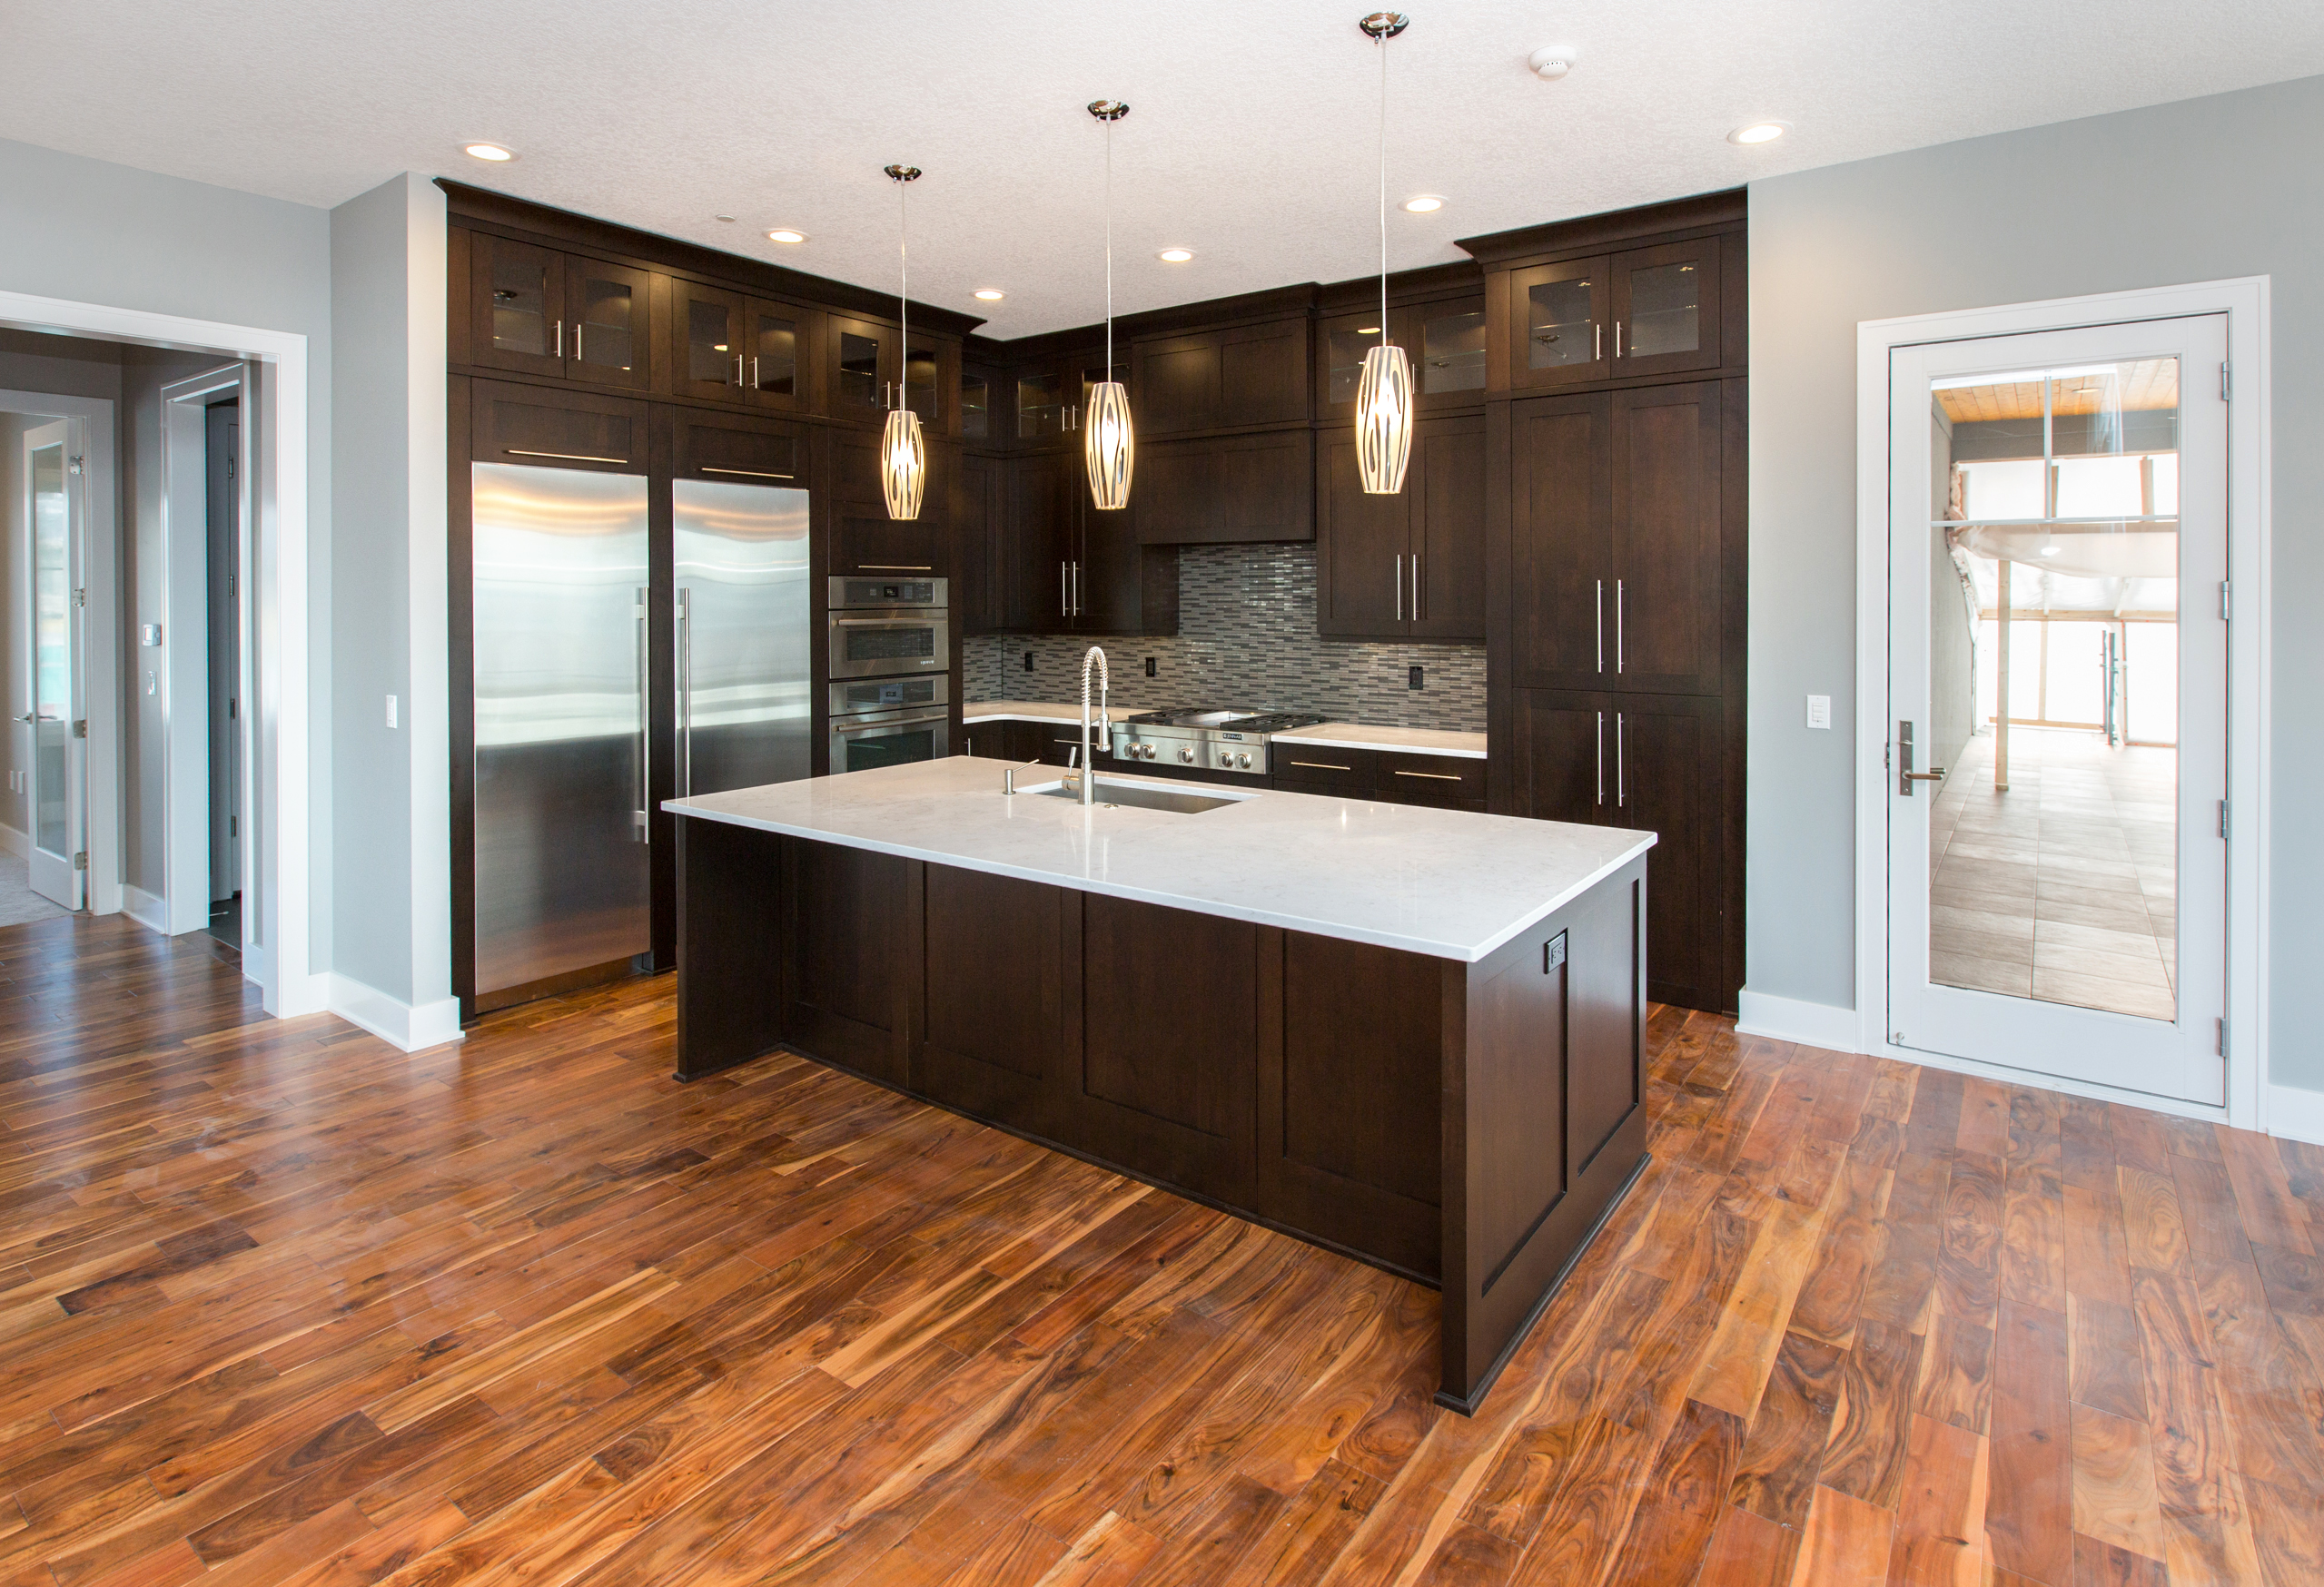 Love This Modern Look Dark Kitchen Cabinets Light Fixtures White Trim Acacia Floor Light Countertops Sleek Styling Sty Minimalist Kitchen Cabinets Minimalist Kitchen Dark Kitchen Cabinets